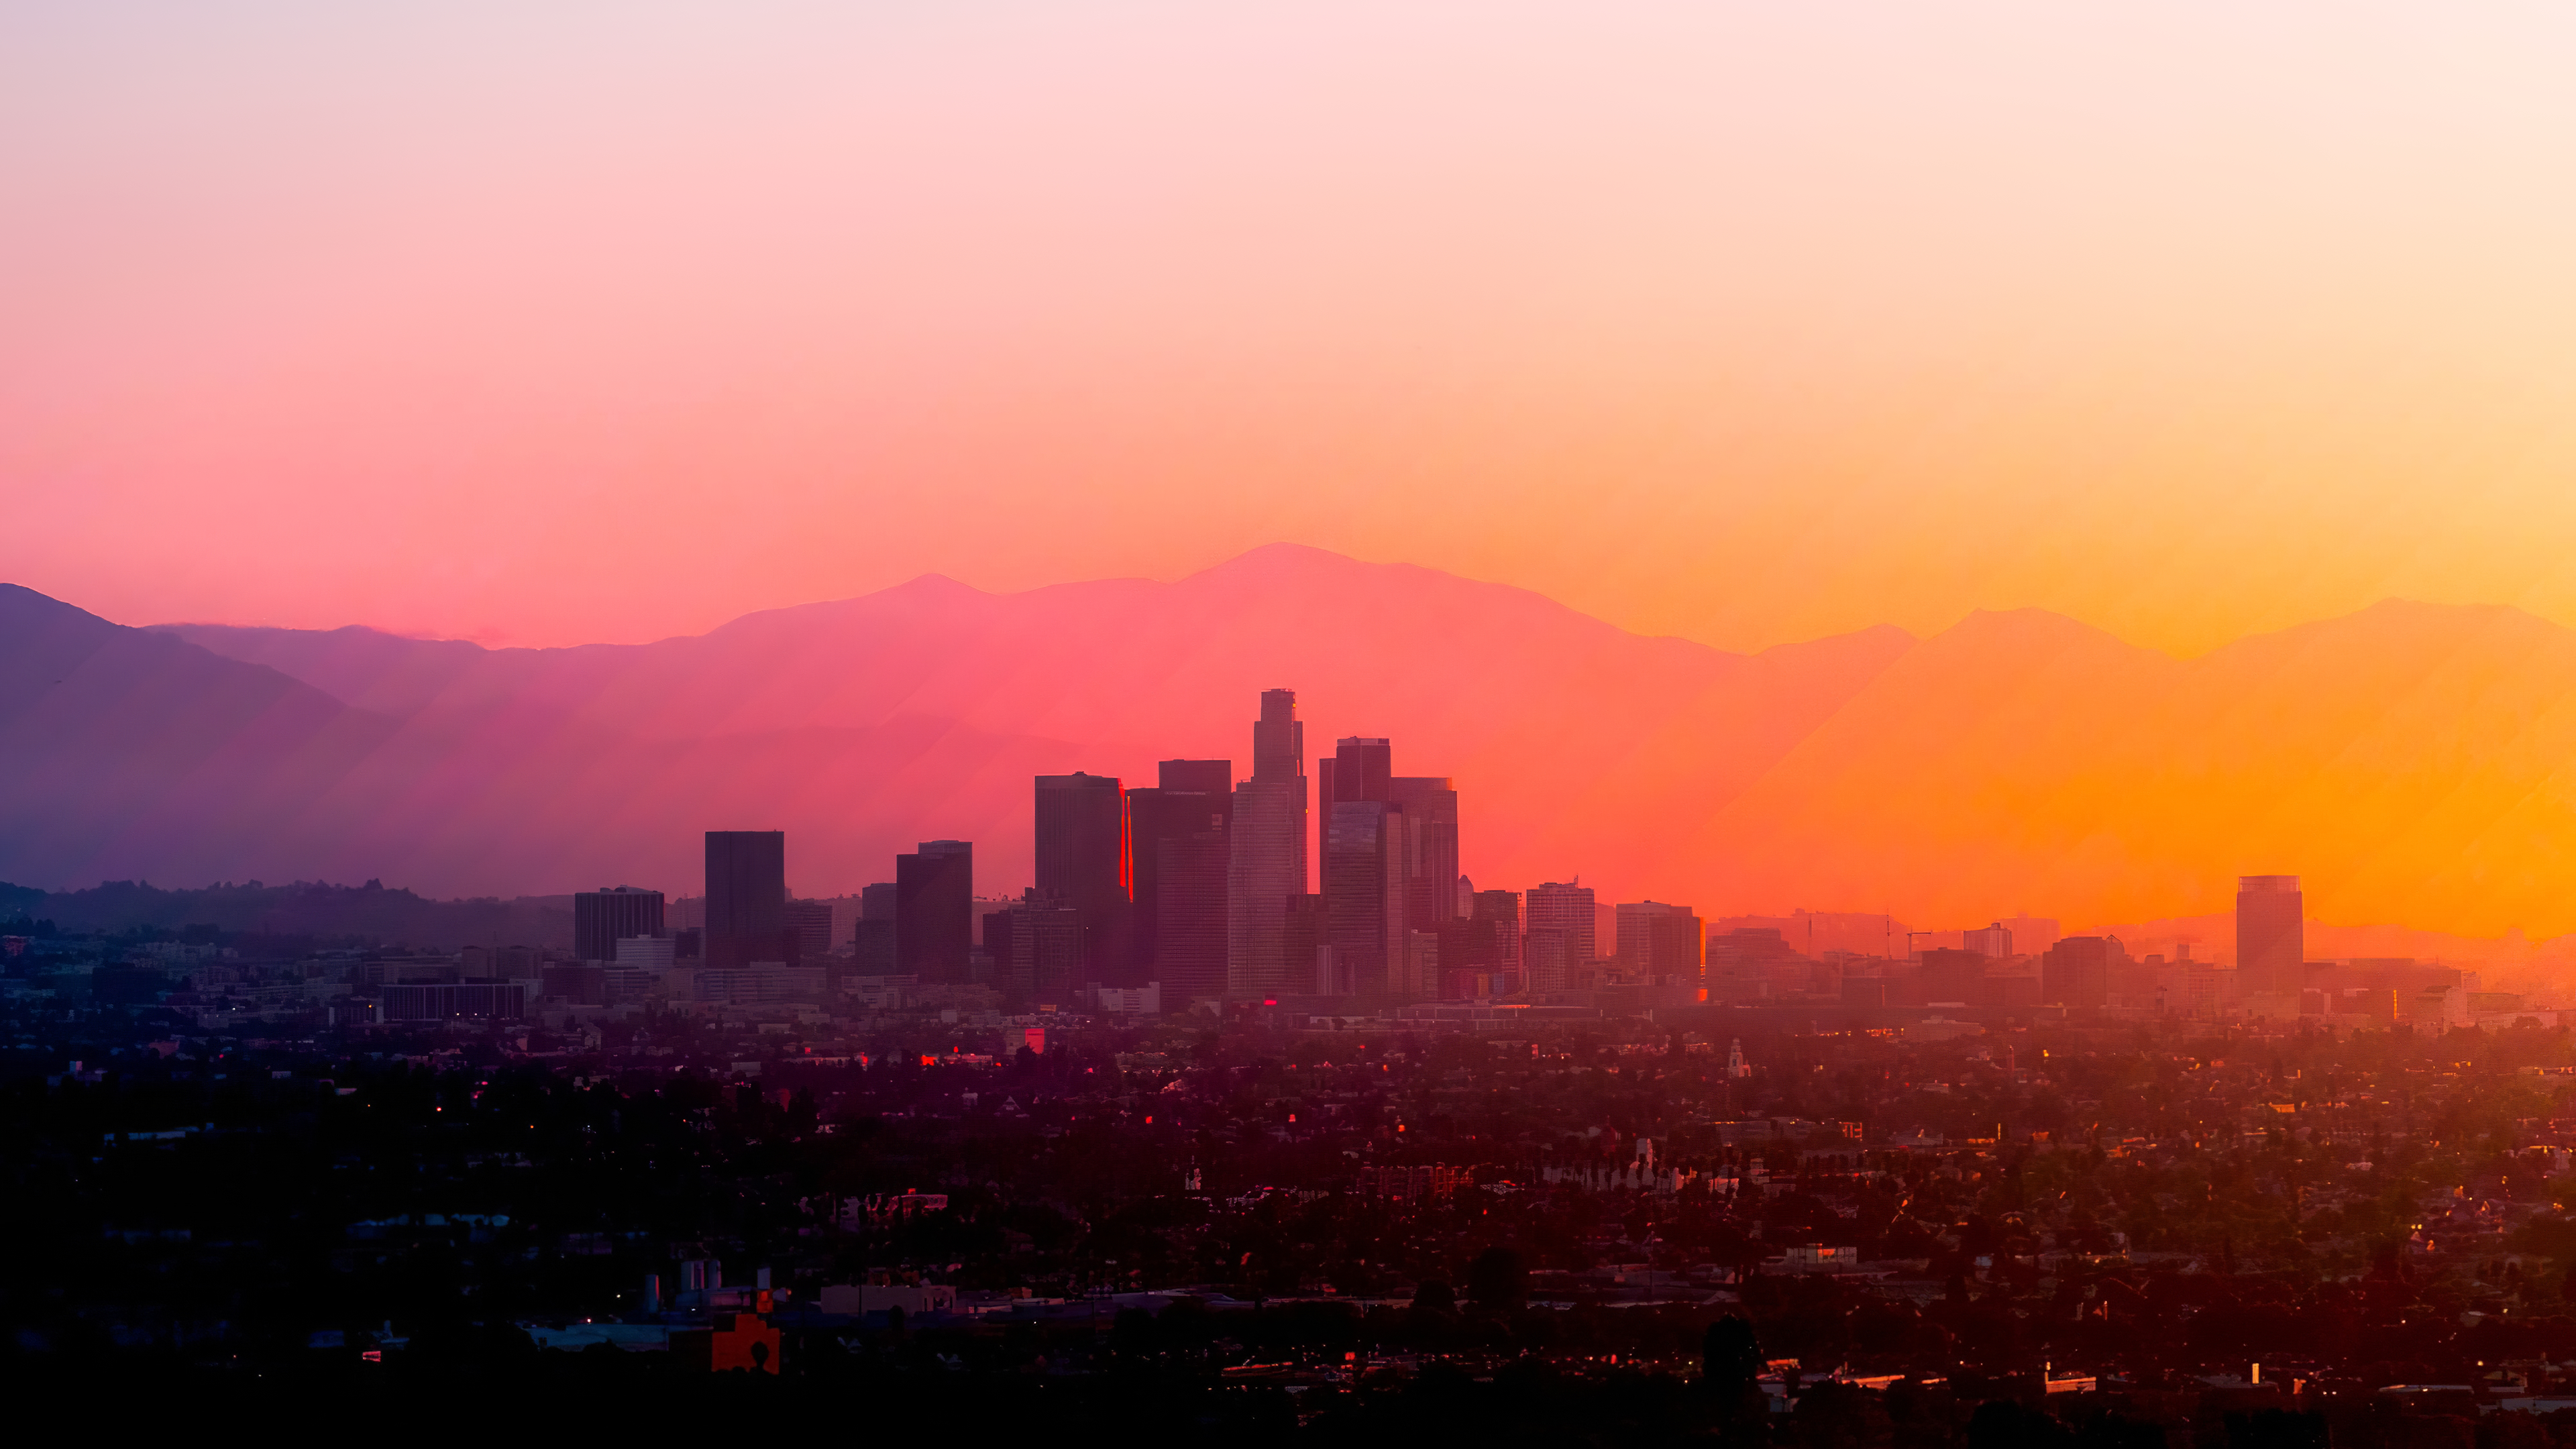 Los Angeles Wallpaper, HD City 4K Wallpapers, Images ...